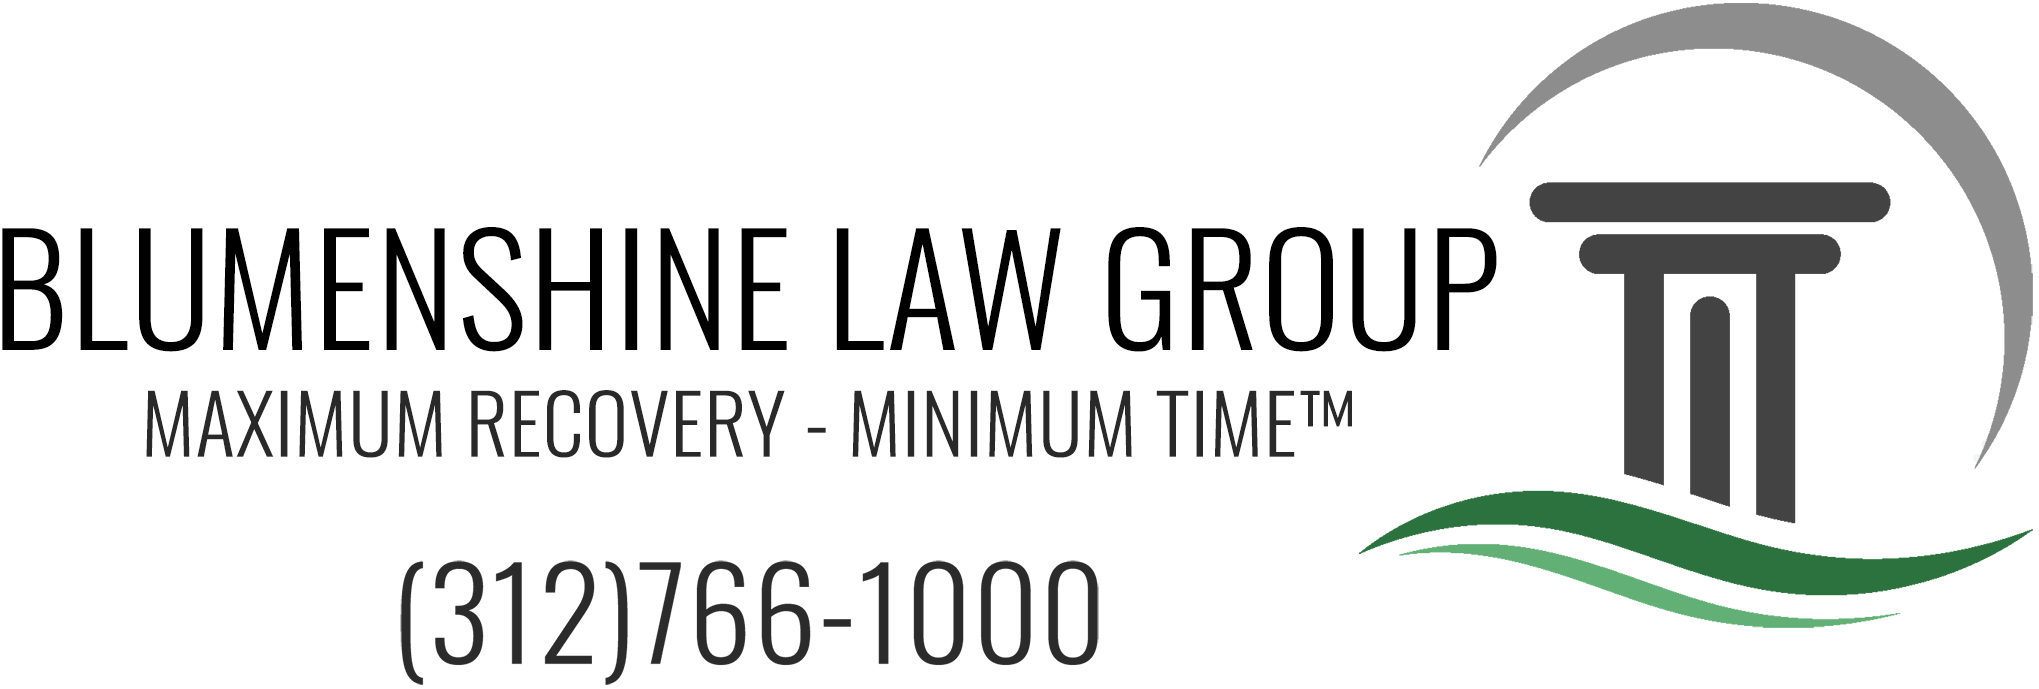 Blumenshine Law Group